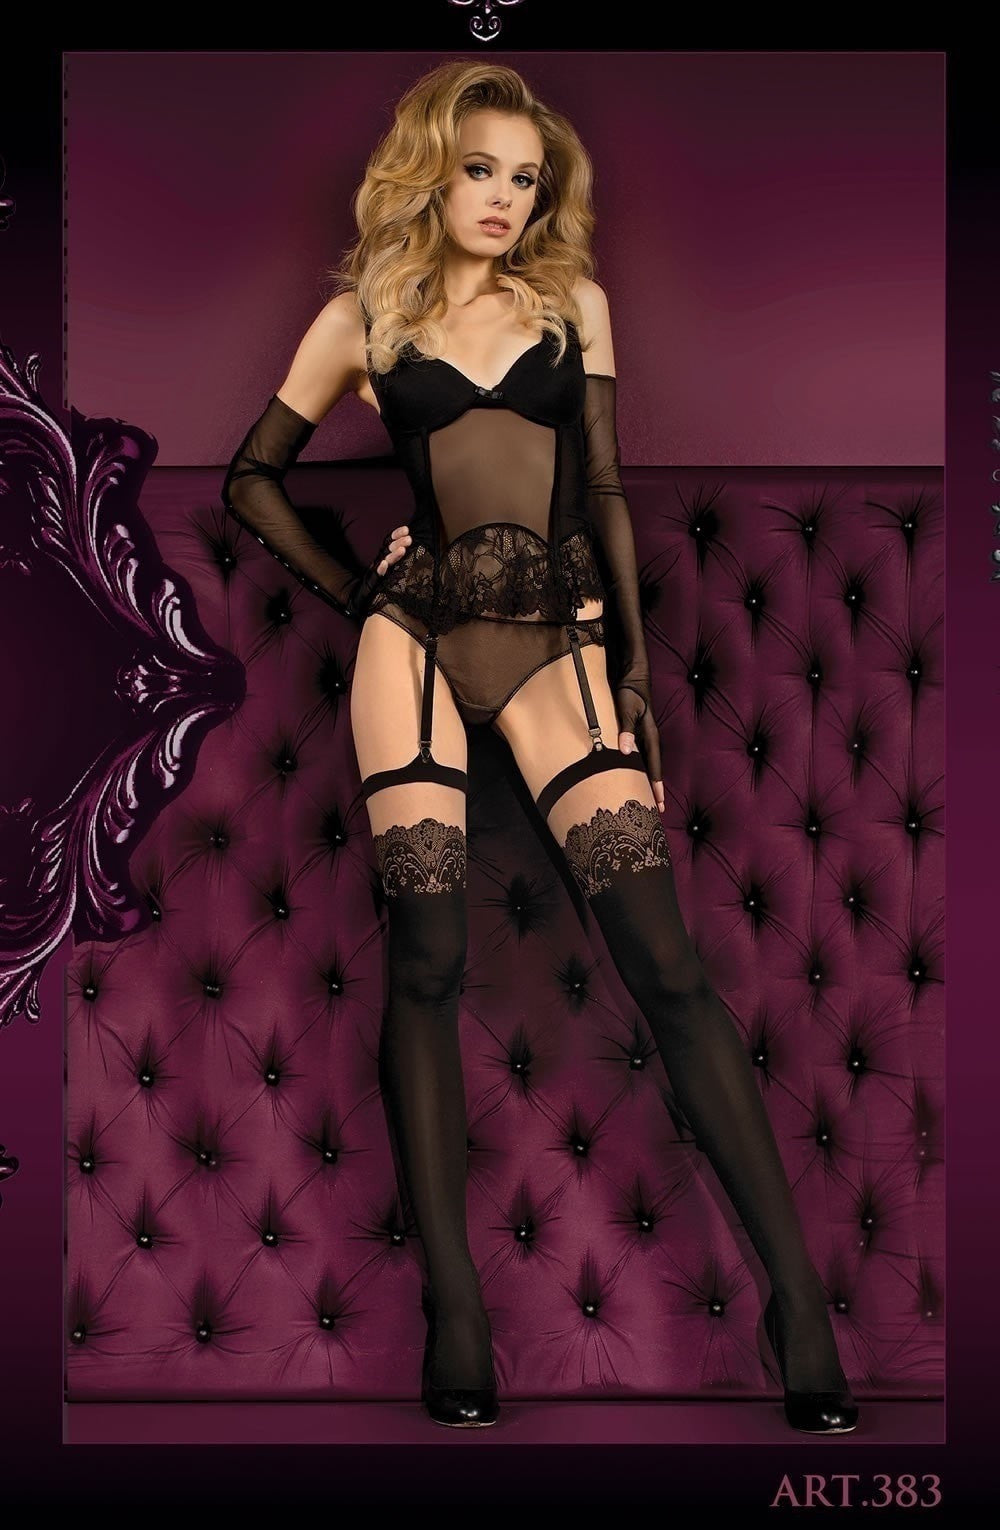 Ballerina Stockings 383 (Black/Skin) - Stockings - Ballerina - Charm and Lace Boutique